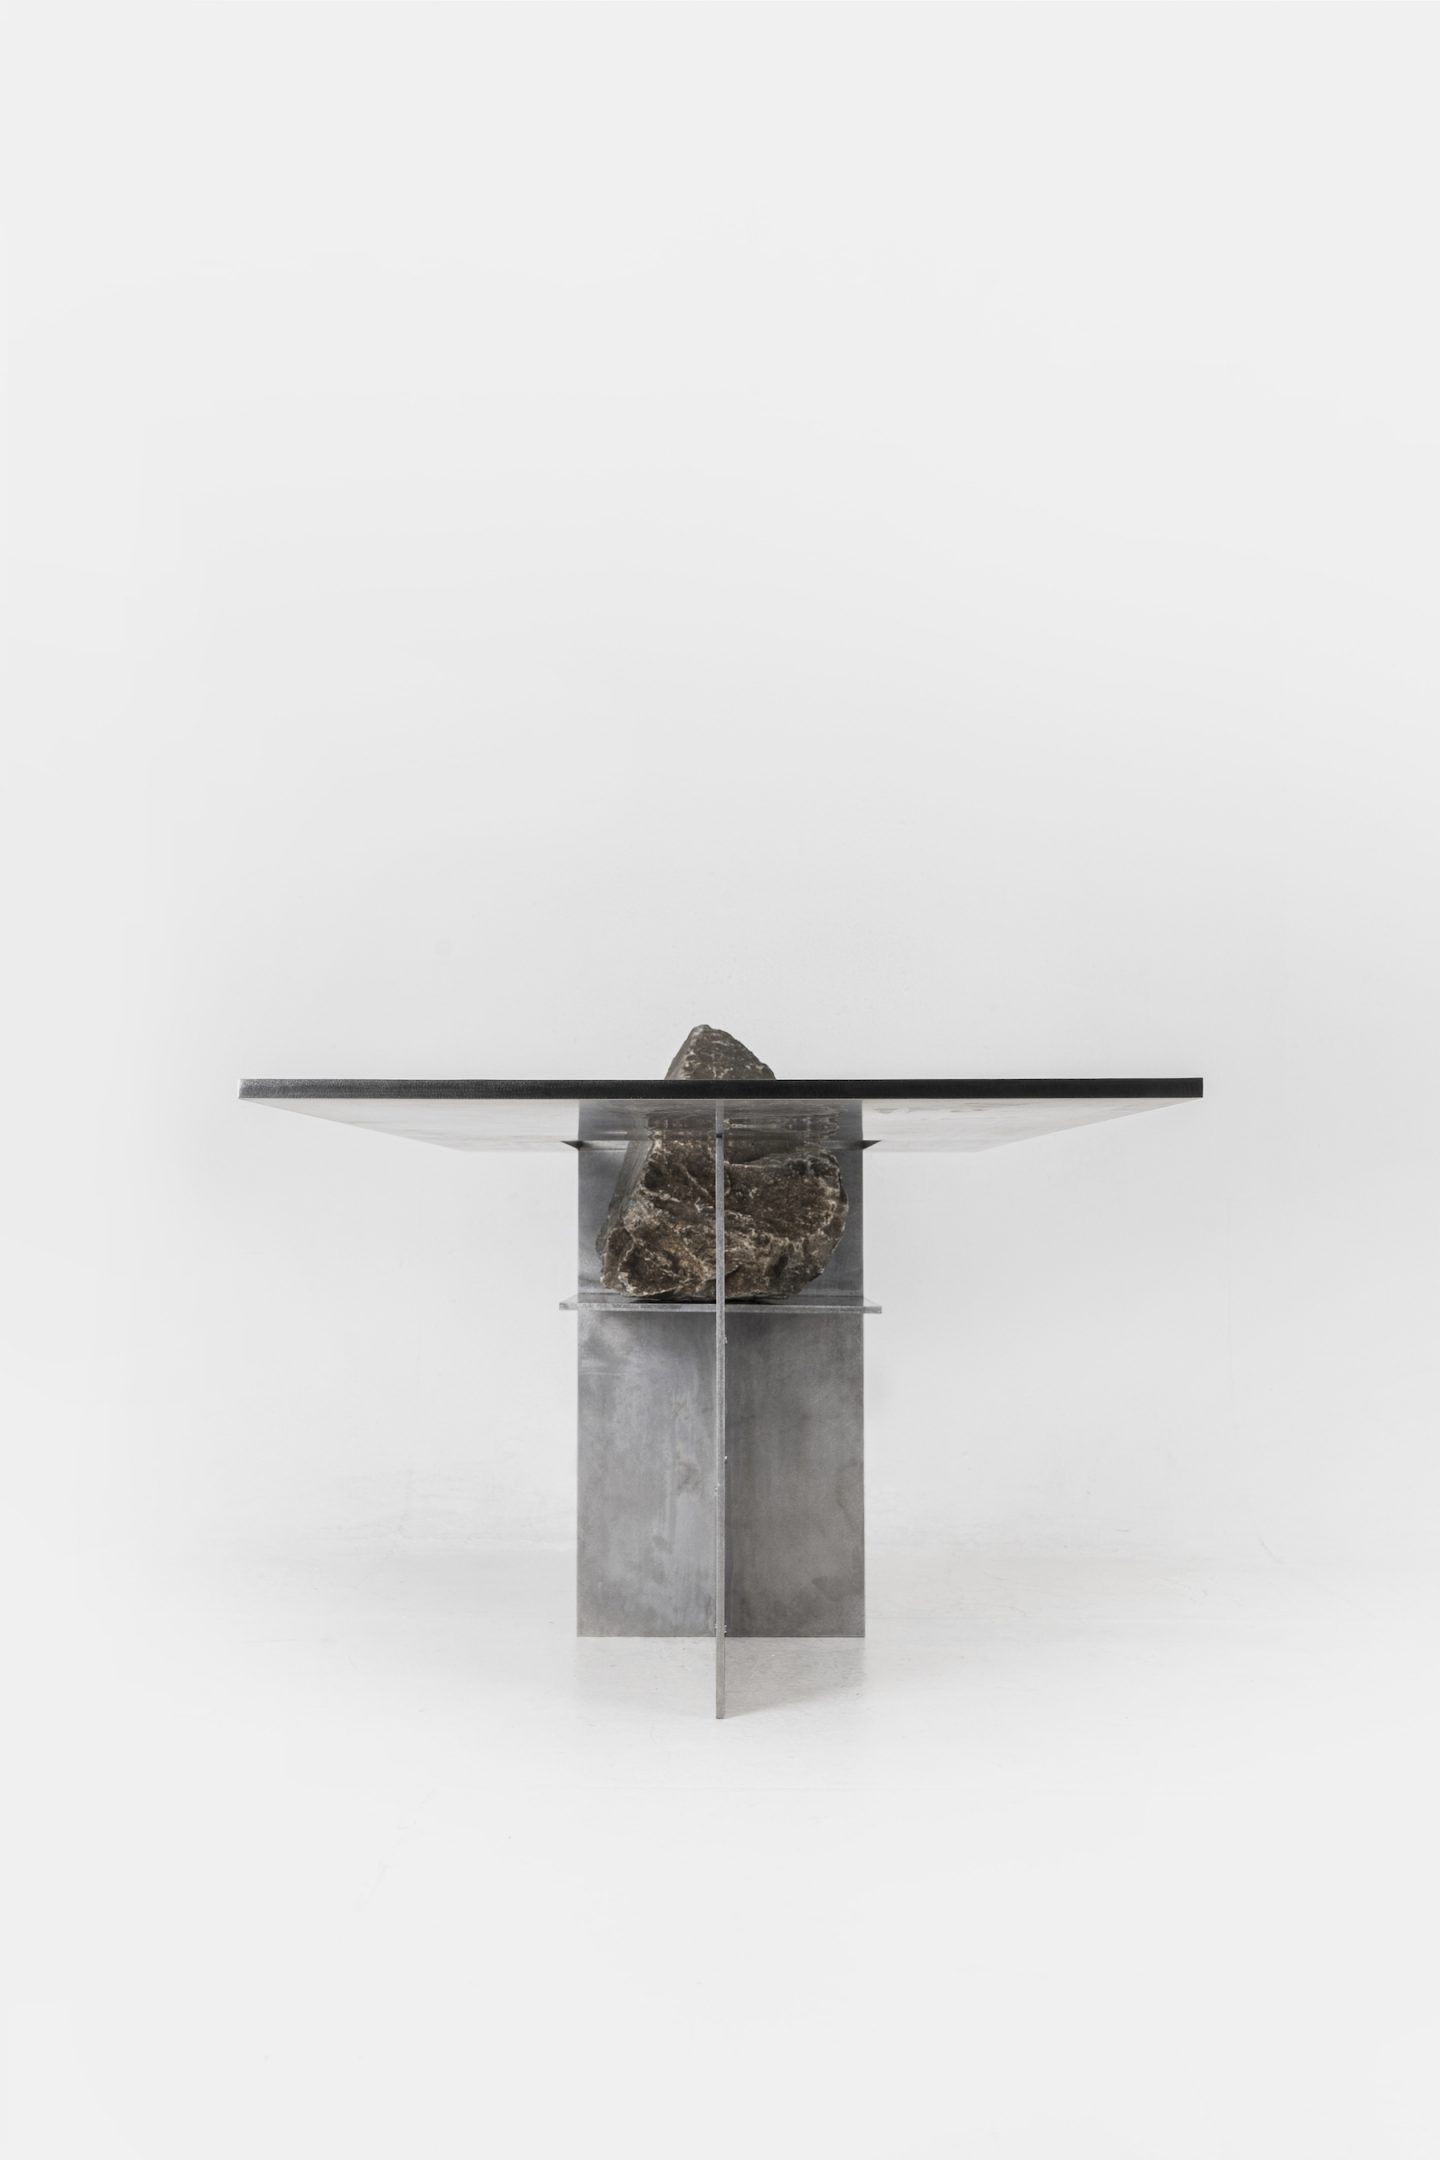 IGNANT-Design-Sisan-Lee-Proportions-Of-Stone-10